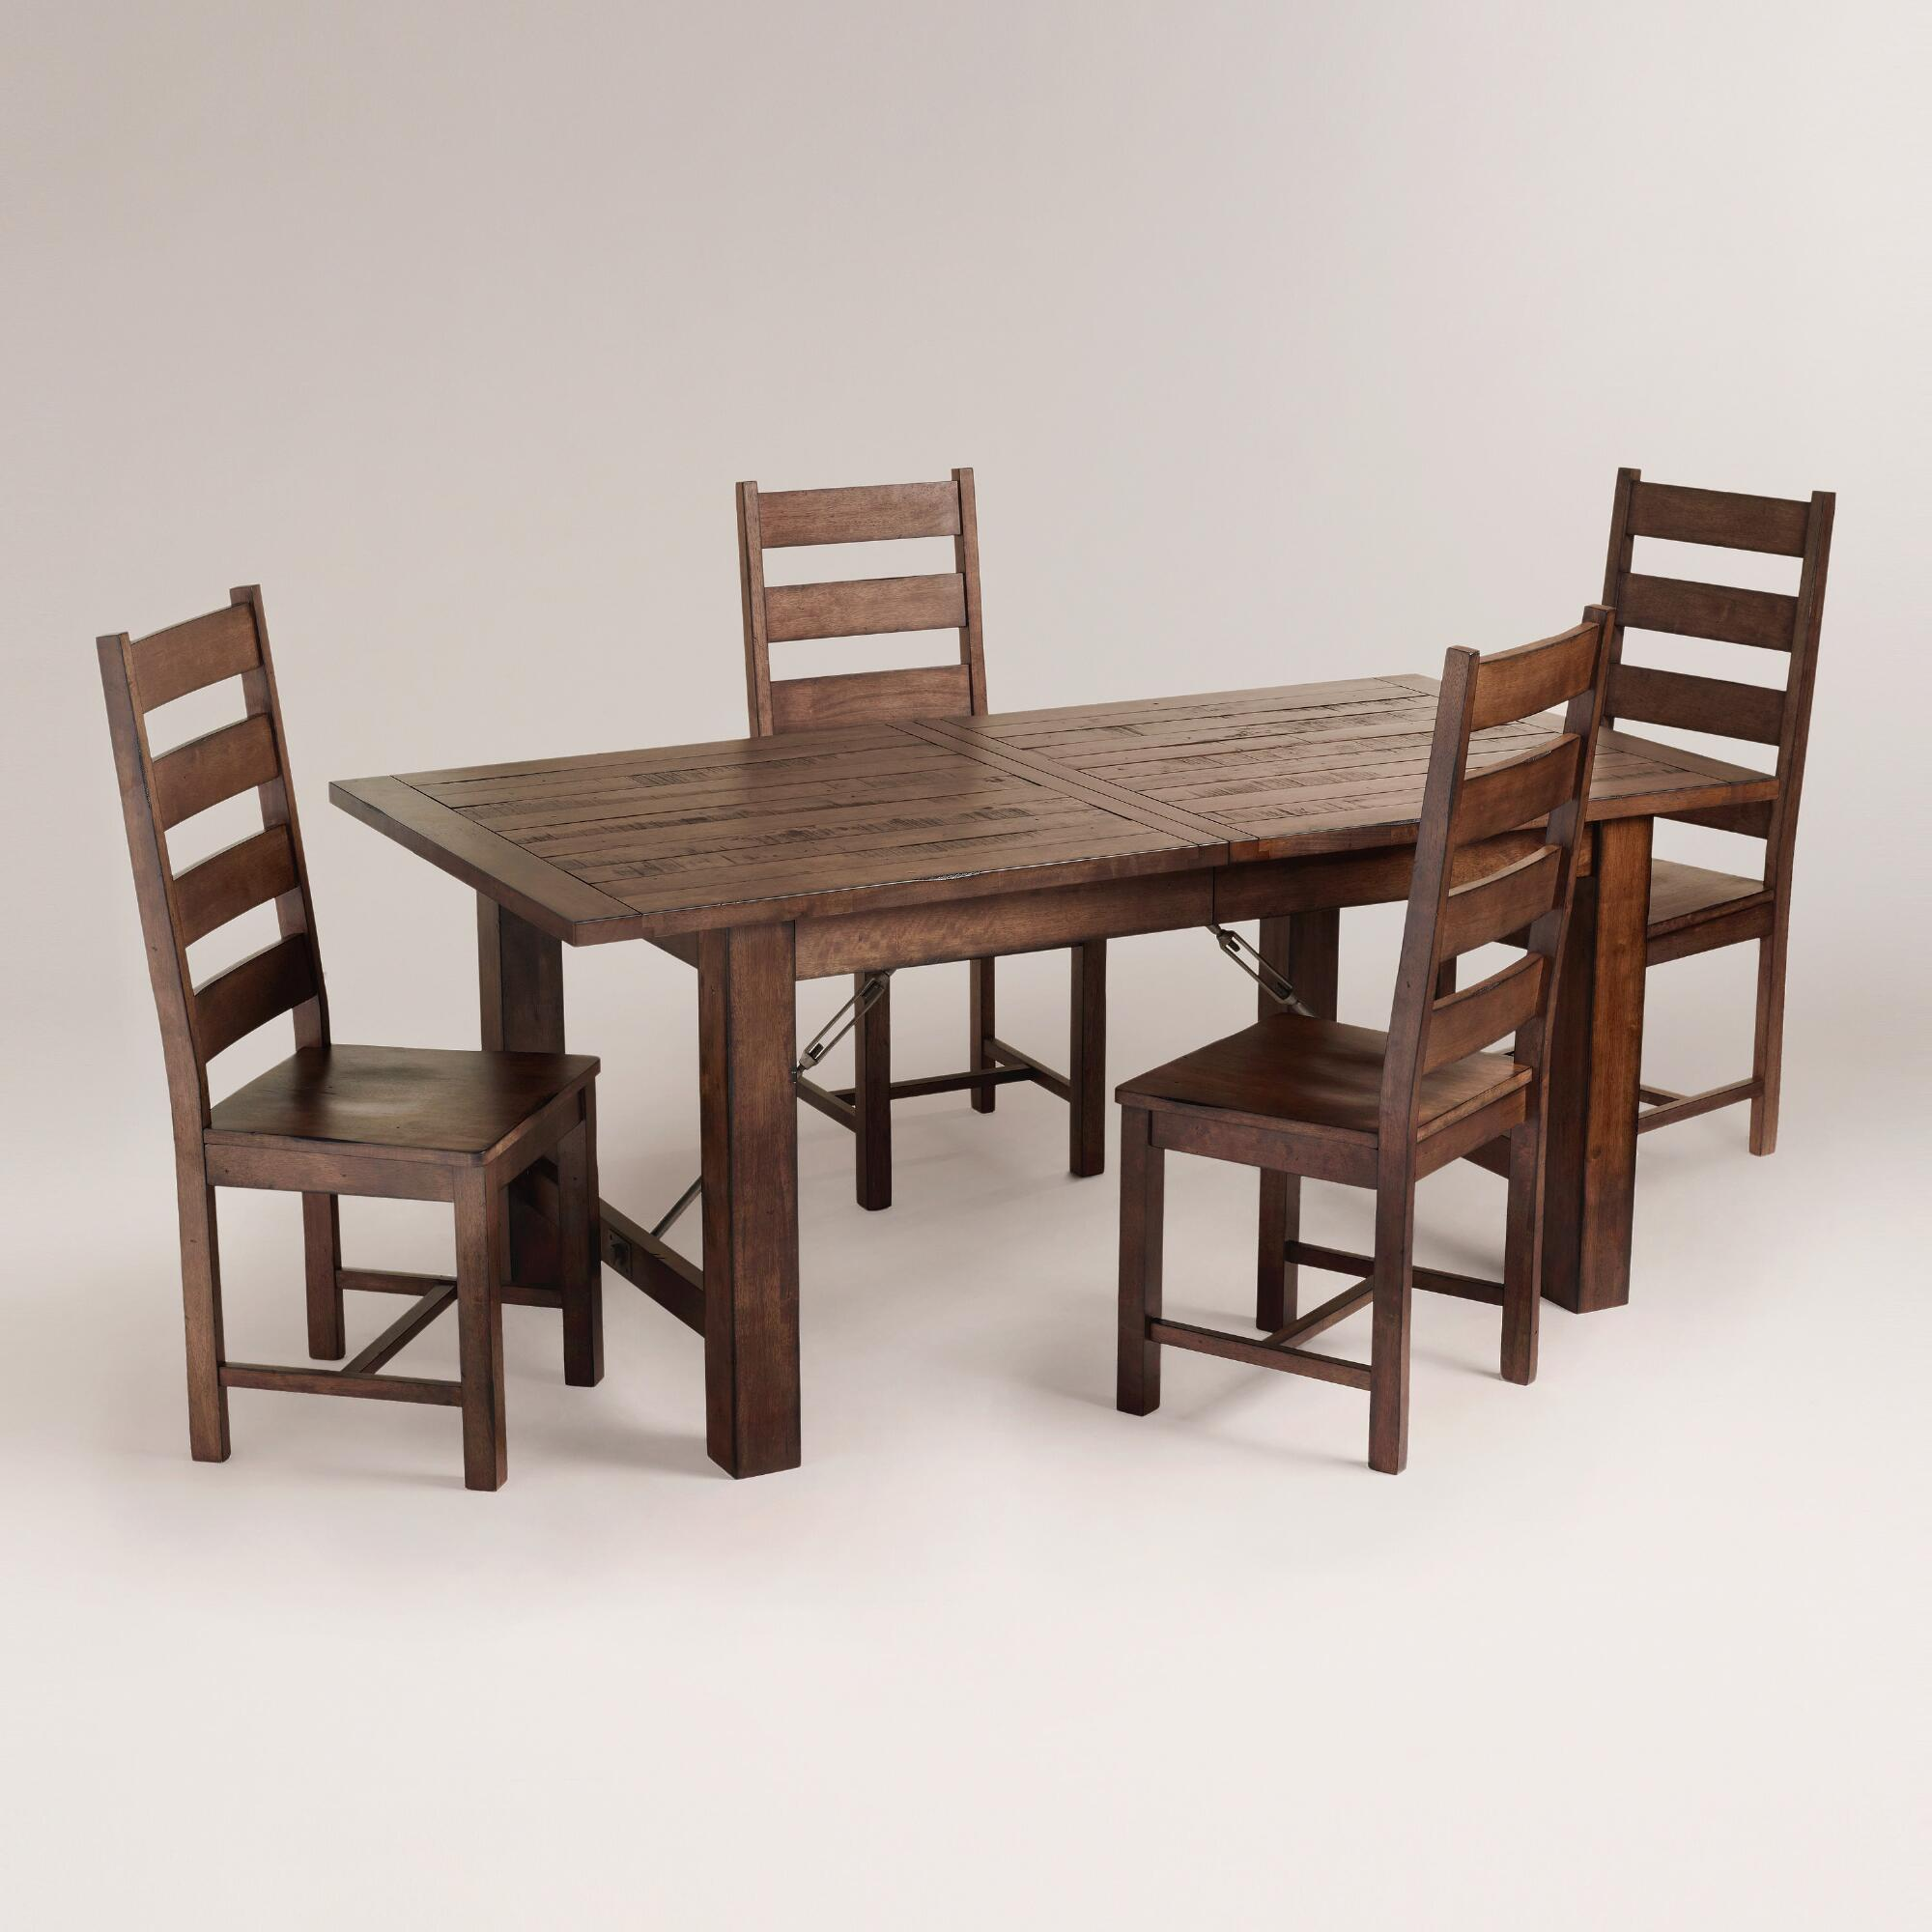 Garner Dining Table And Chairs Furniture Set